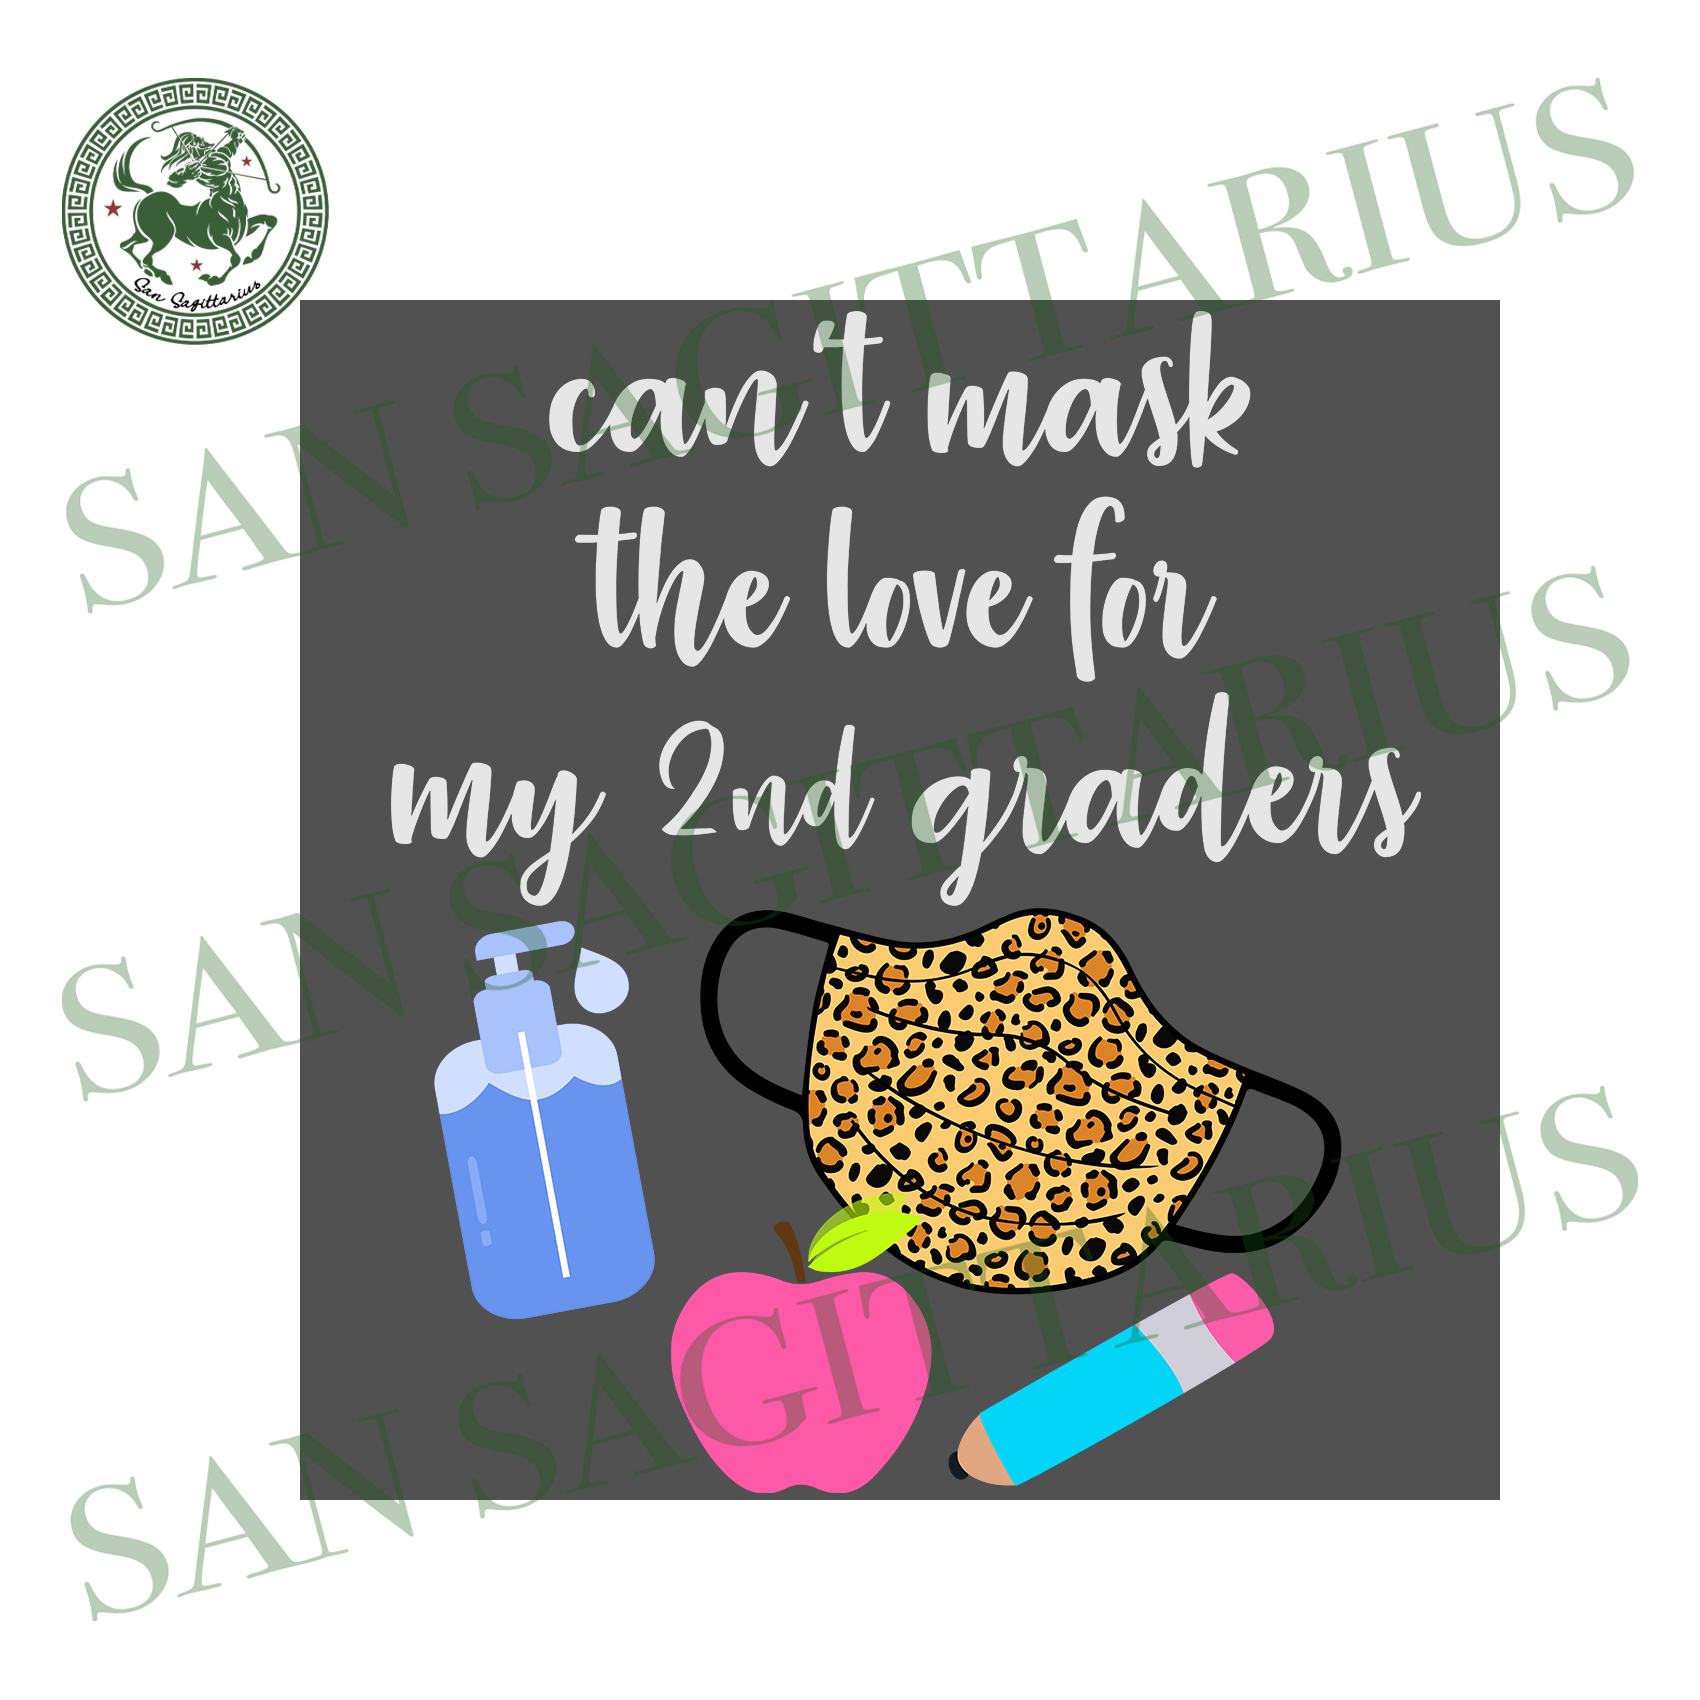 Cant mask the love for my 2nd graders svg,svg,teach svg,apple teacher svg,teacher online teach svg,2nd graders school svg,svg cricut, silhouette svg files, cricut svg, silhouette svg, svg des